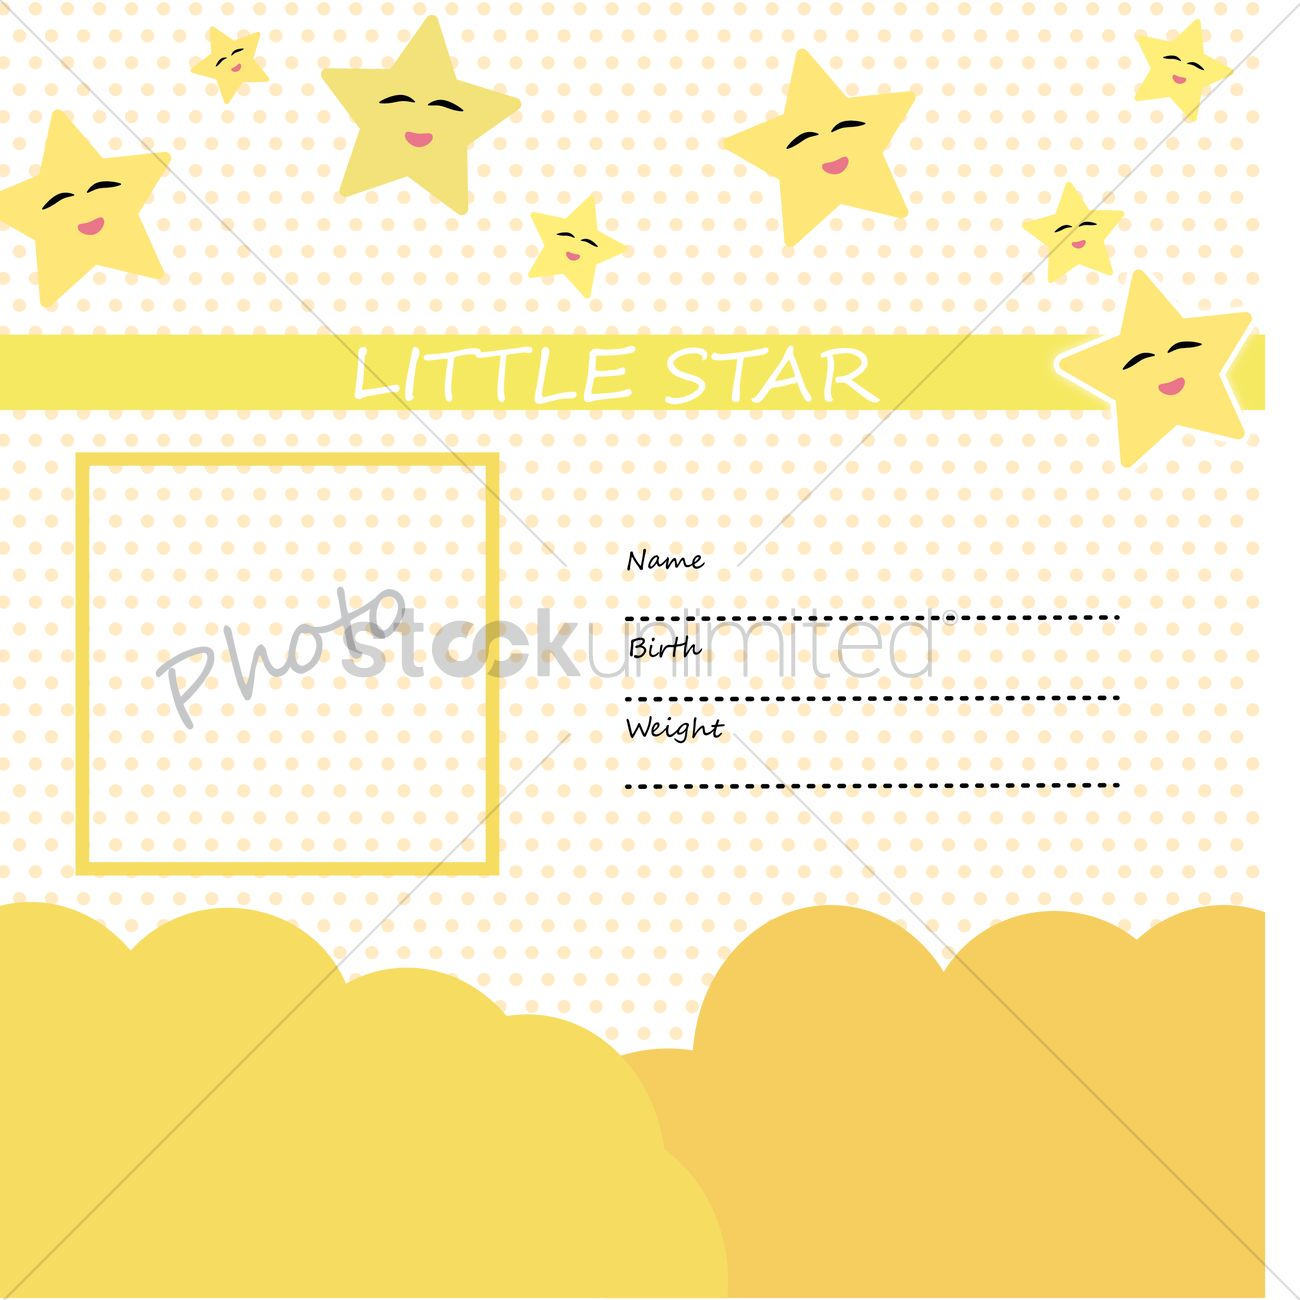 Stars and polka dot template Vector Image - 1483009 | StockUnlimited